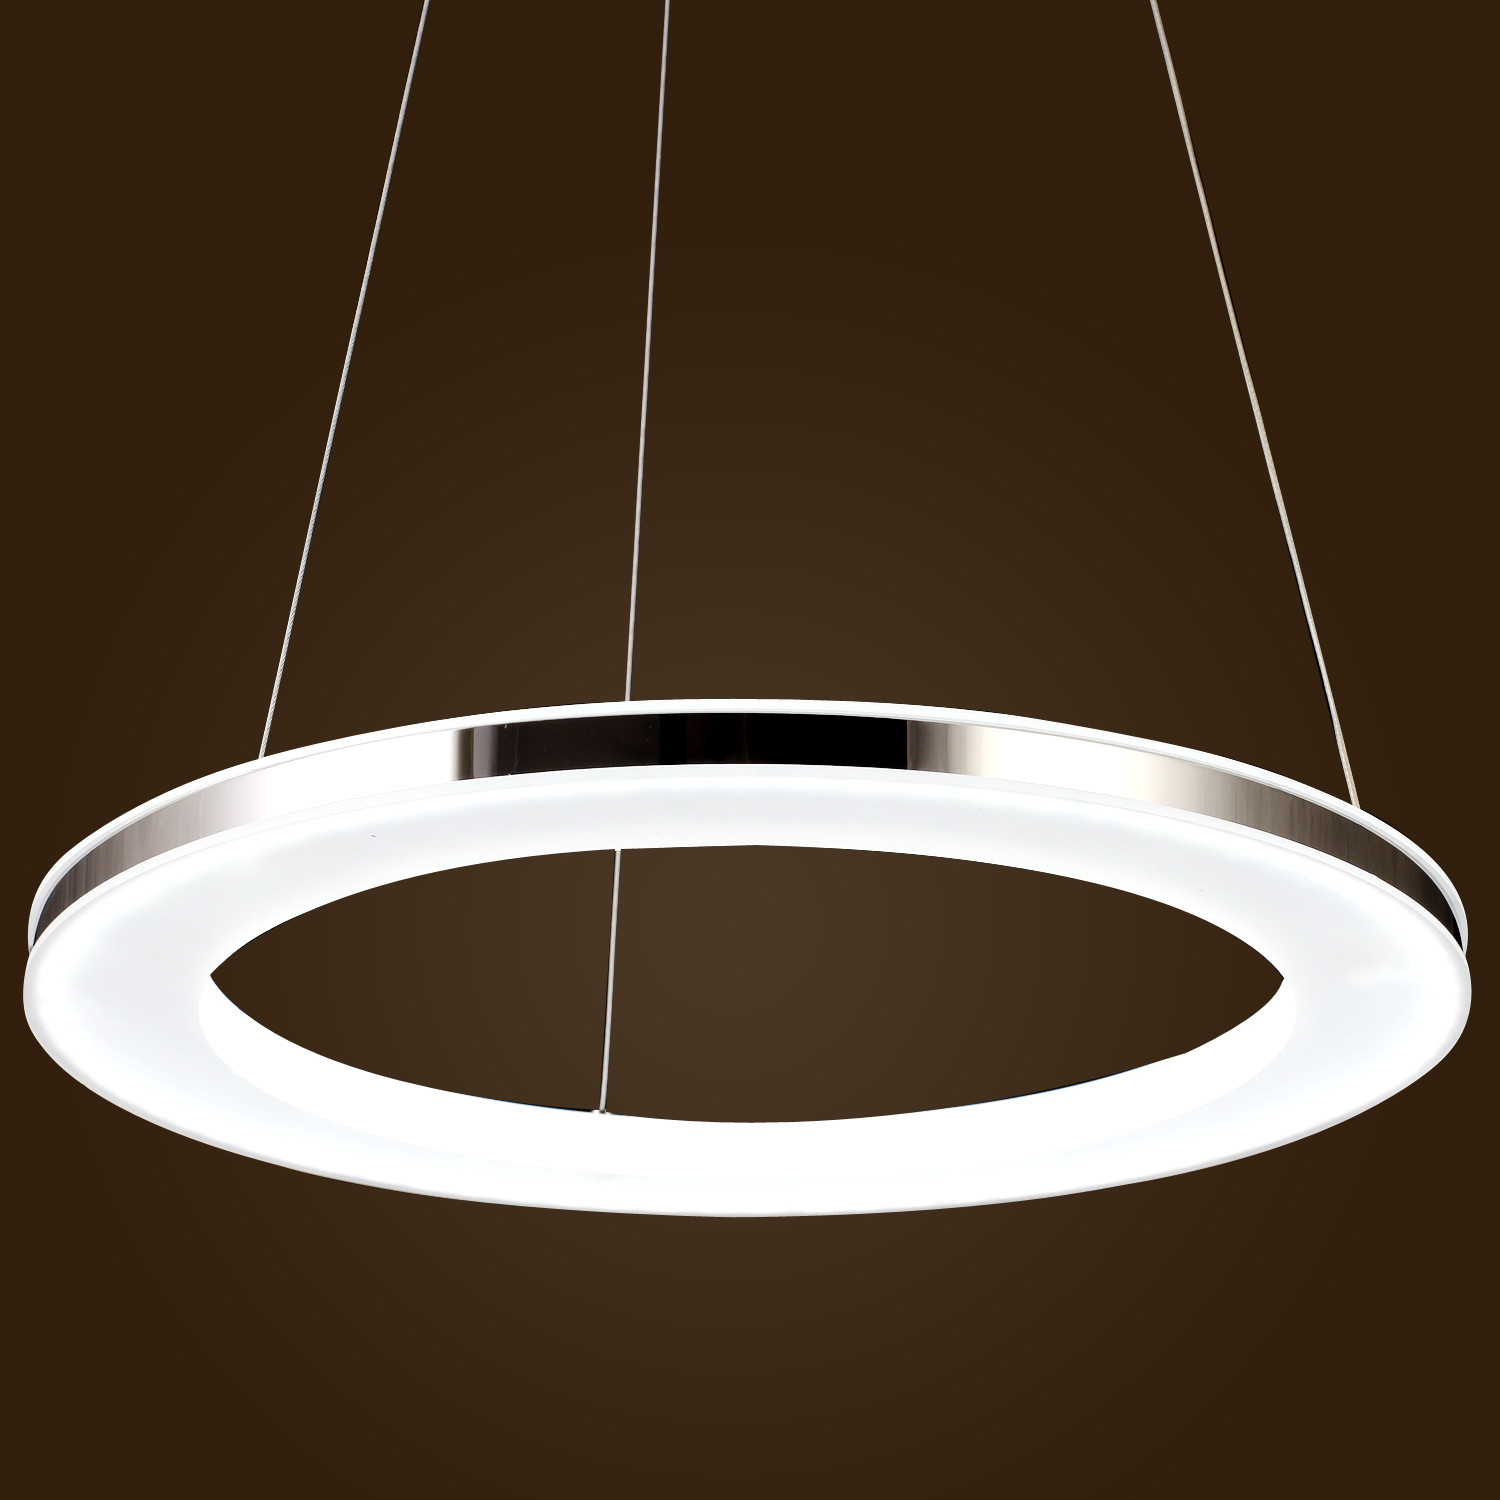 Acrylic pendant ceiling light led modern chandelier chic for Modern hanging pendant lights